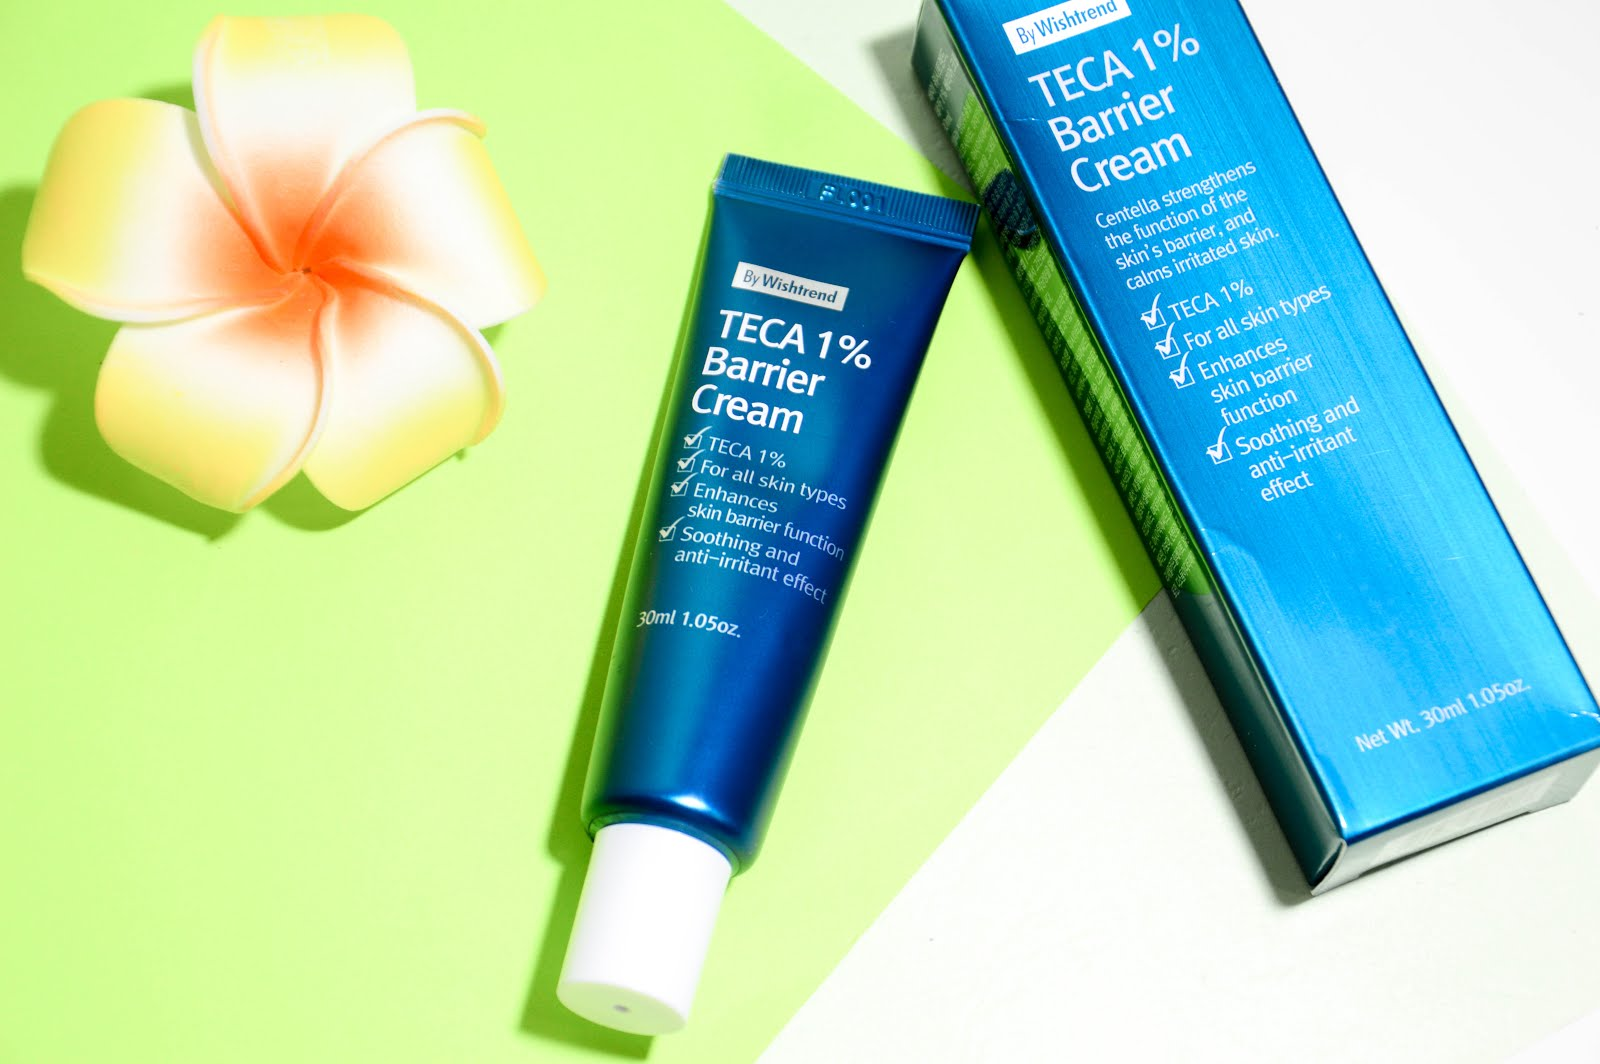 acne cream that works 100%